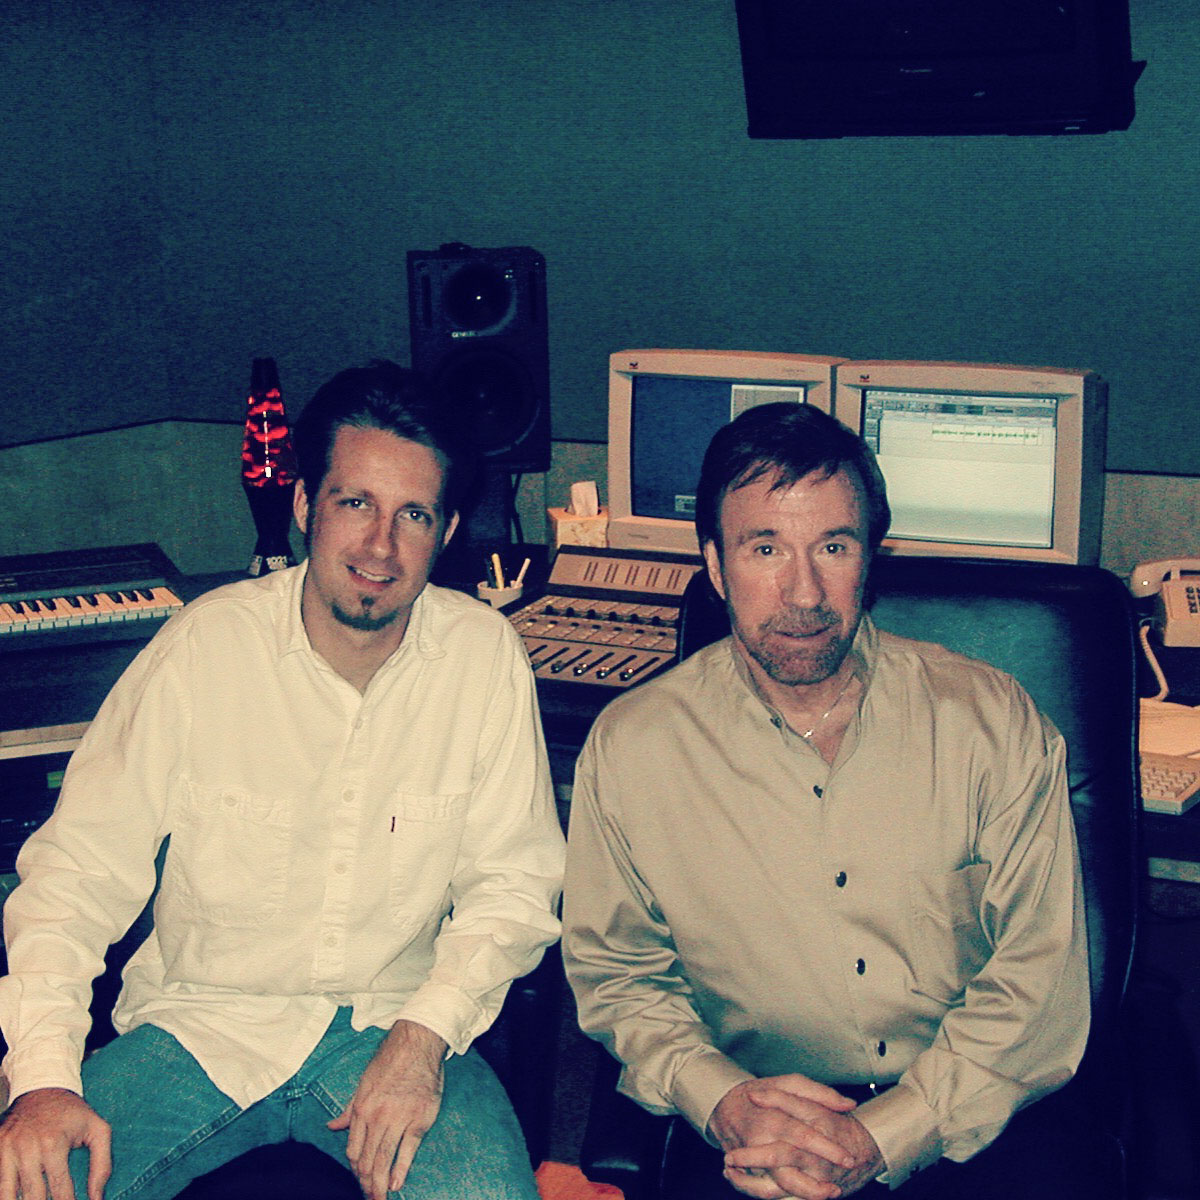 In session with Chuck Norris